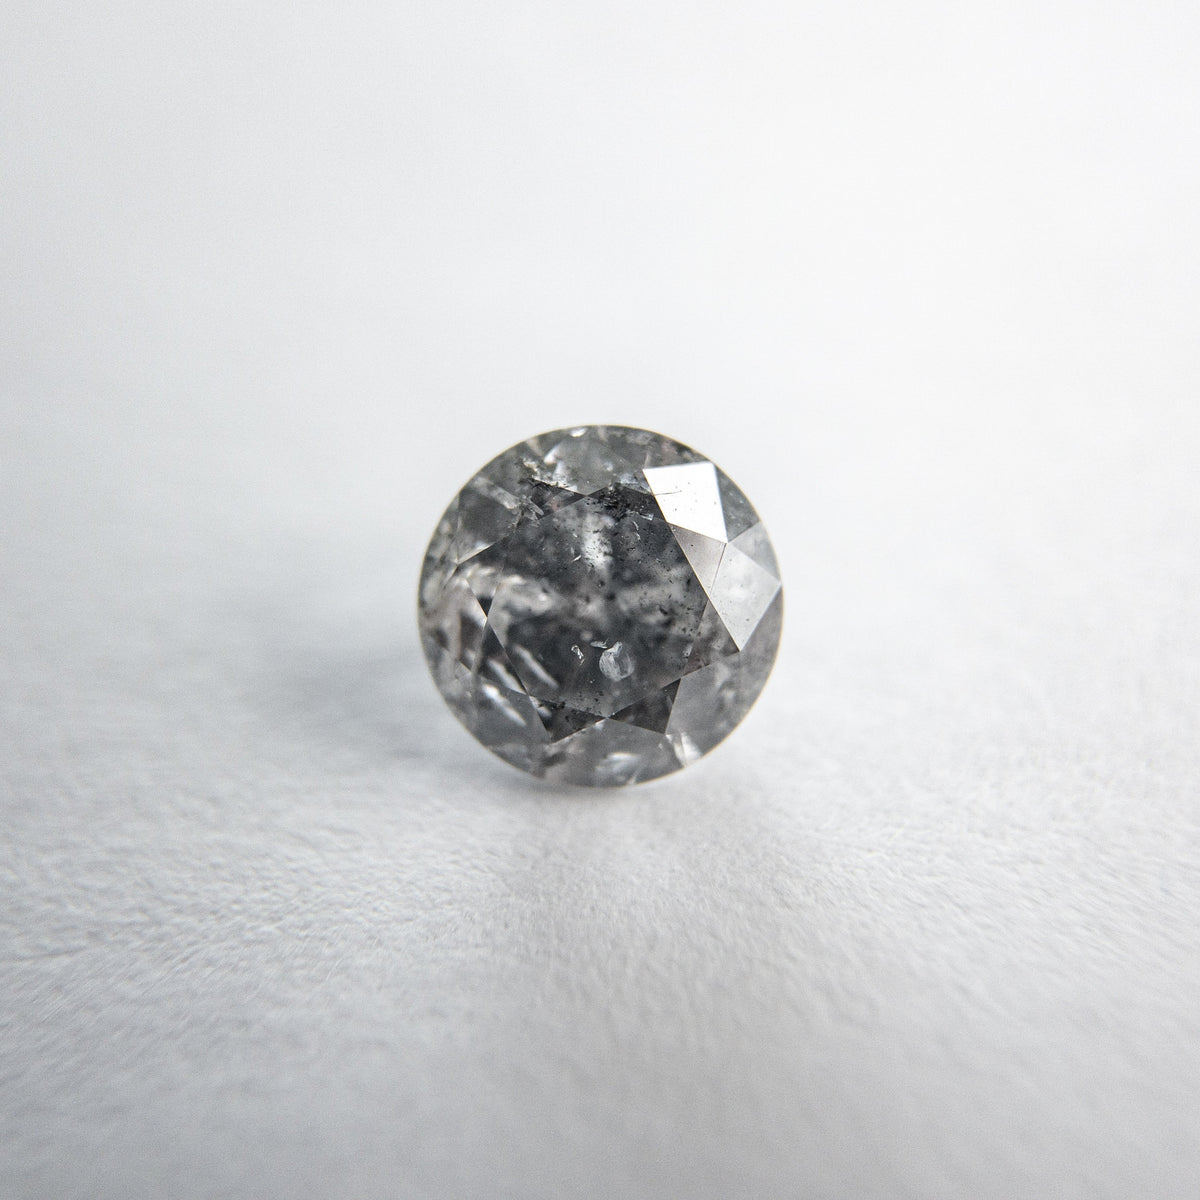 0.71ct 5.65x5.62x3.43mm Round Brilliant 18118-24